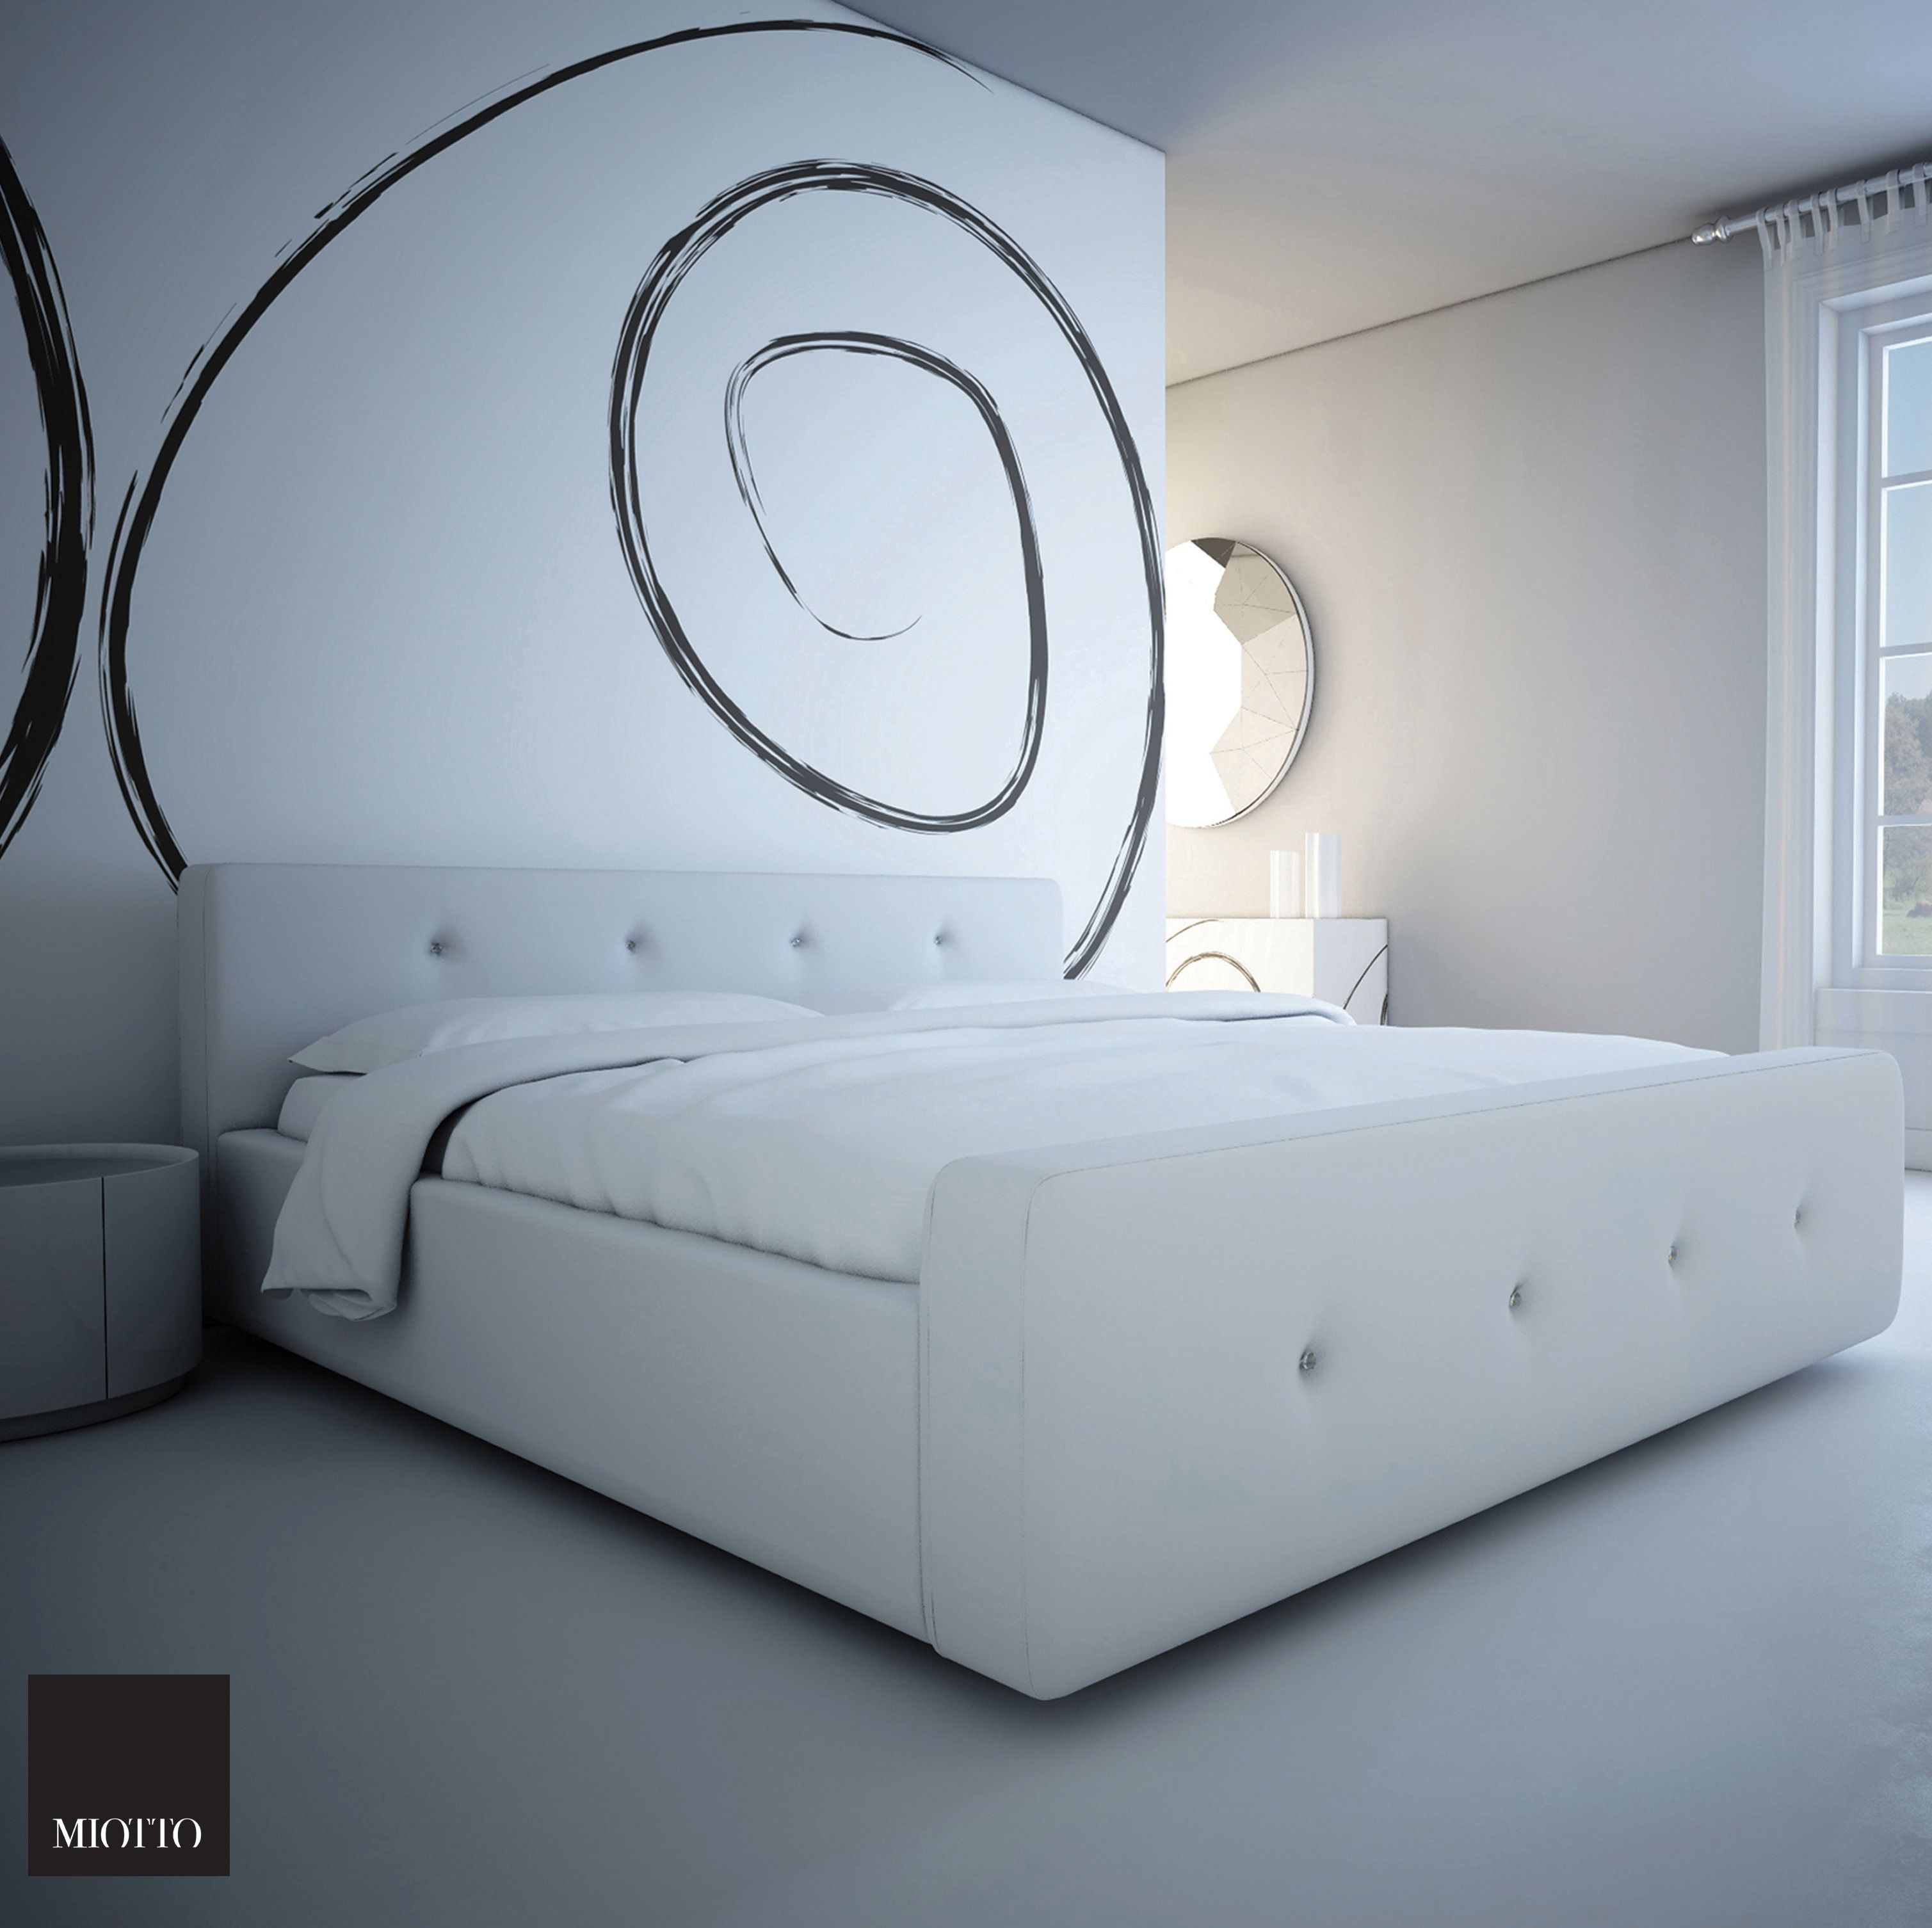 also brown bed cream white the gray plus blue and house in your wooden rug interior wall ideas bedroom of leather placed elegant bench on black look stripped sheet give amazing